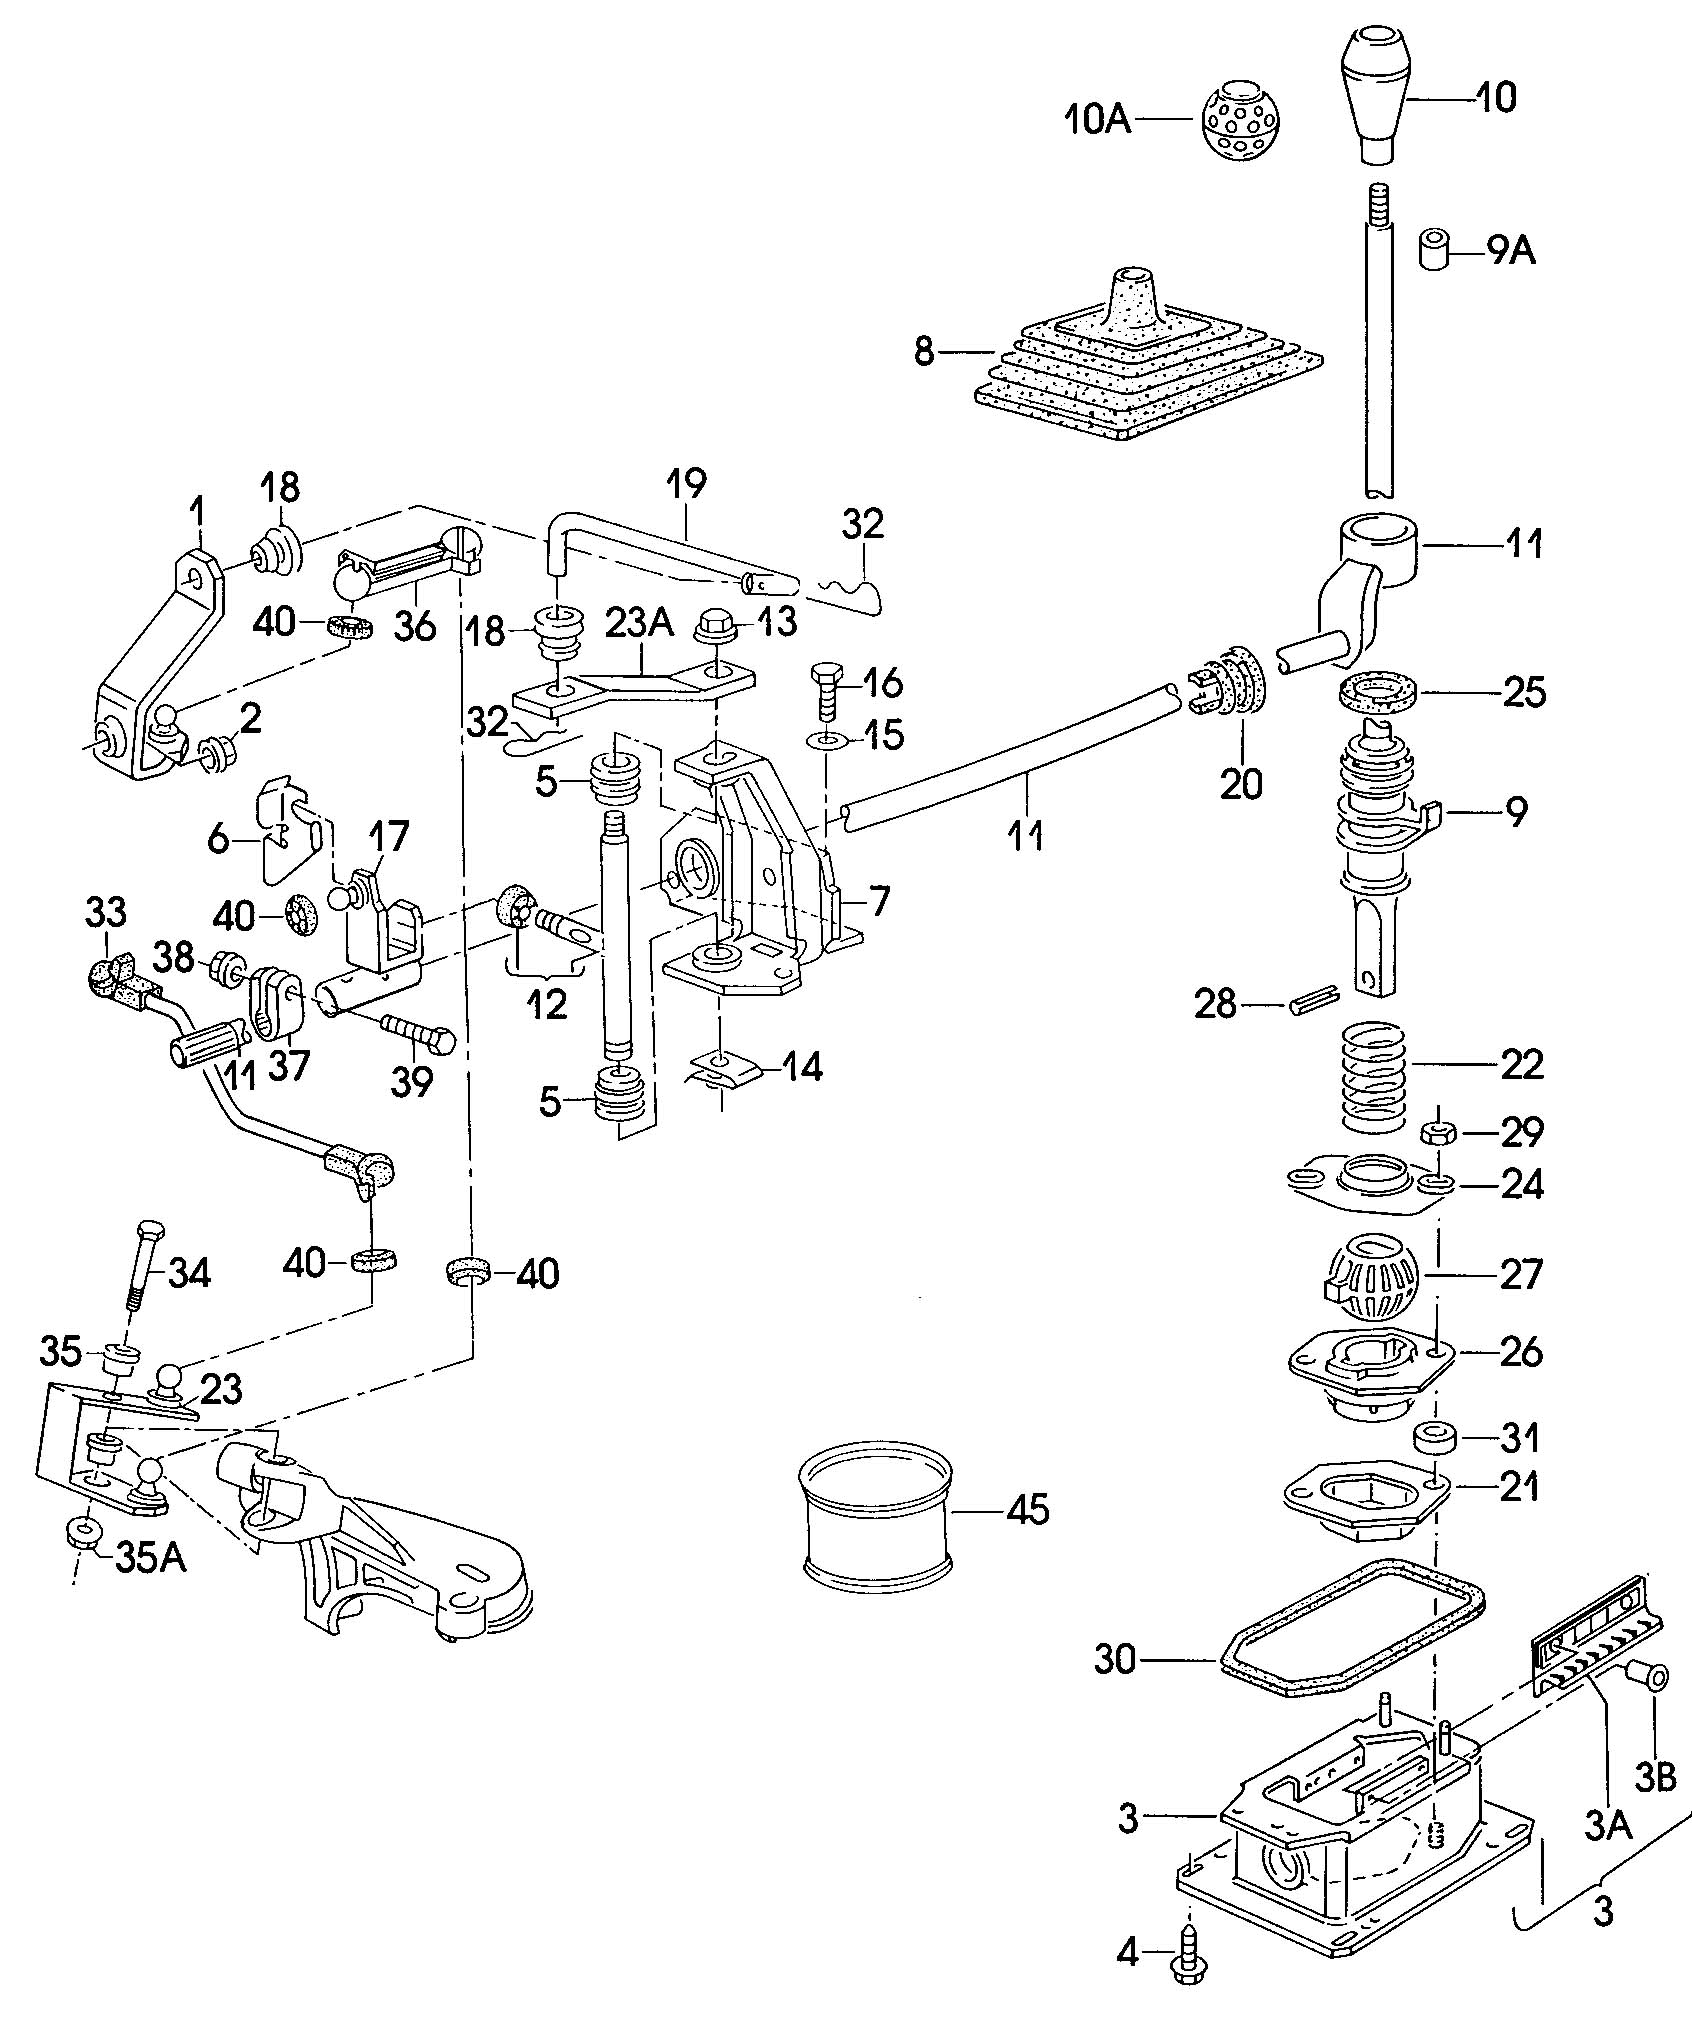 Vw Gti Wiring Diagram